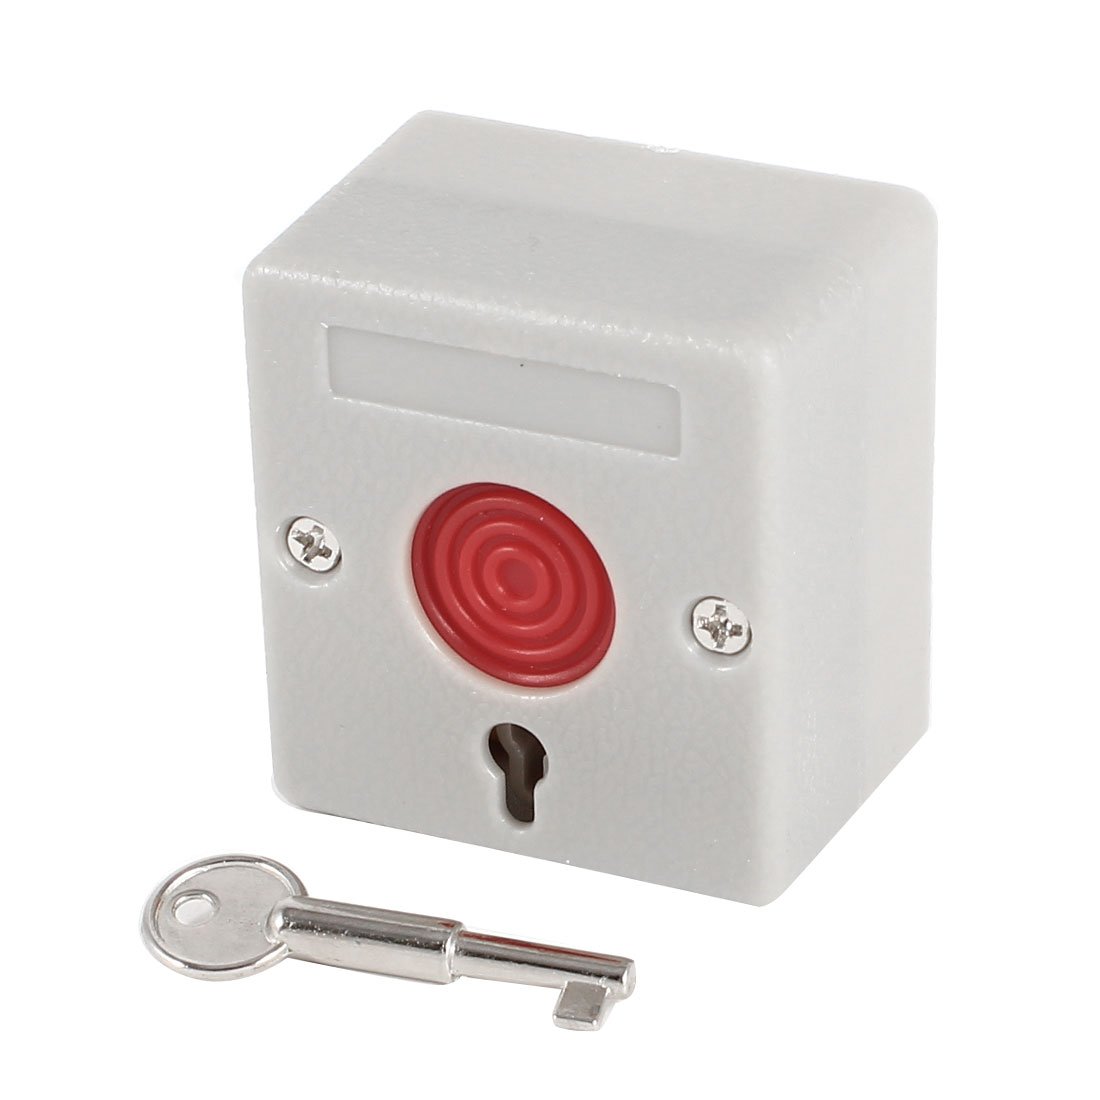 Home Security Burglar Emergency Panic Button NC NO DC 250V